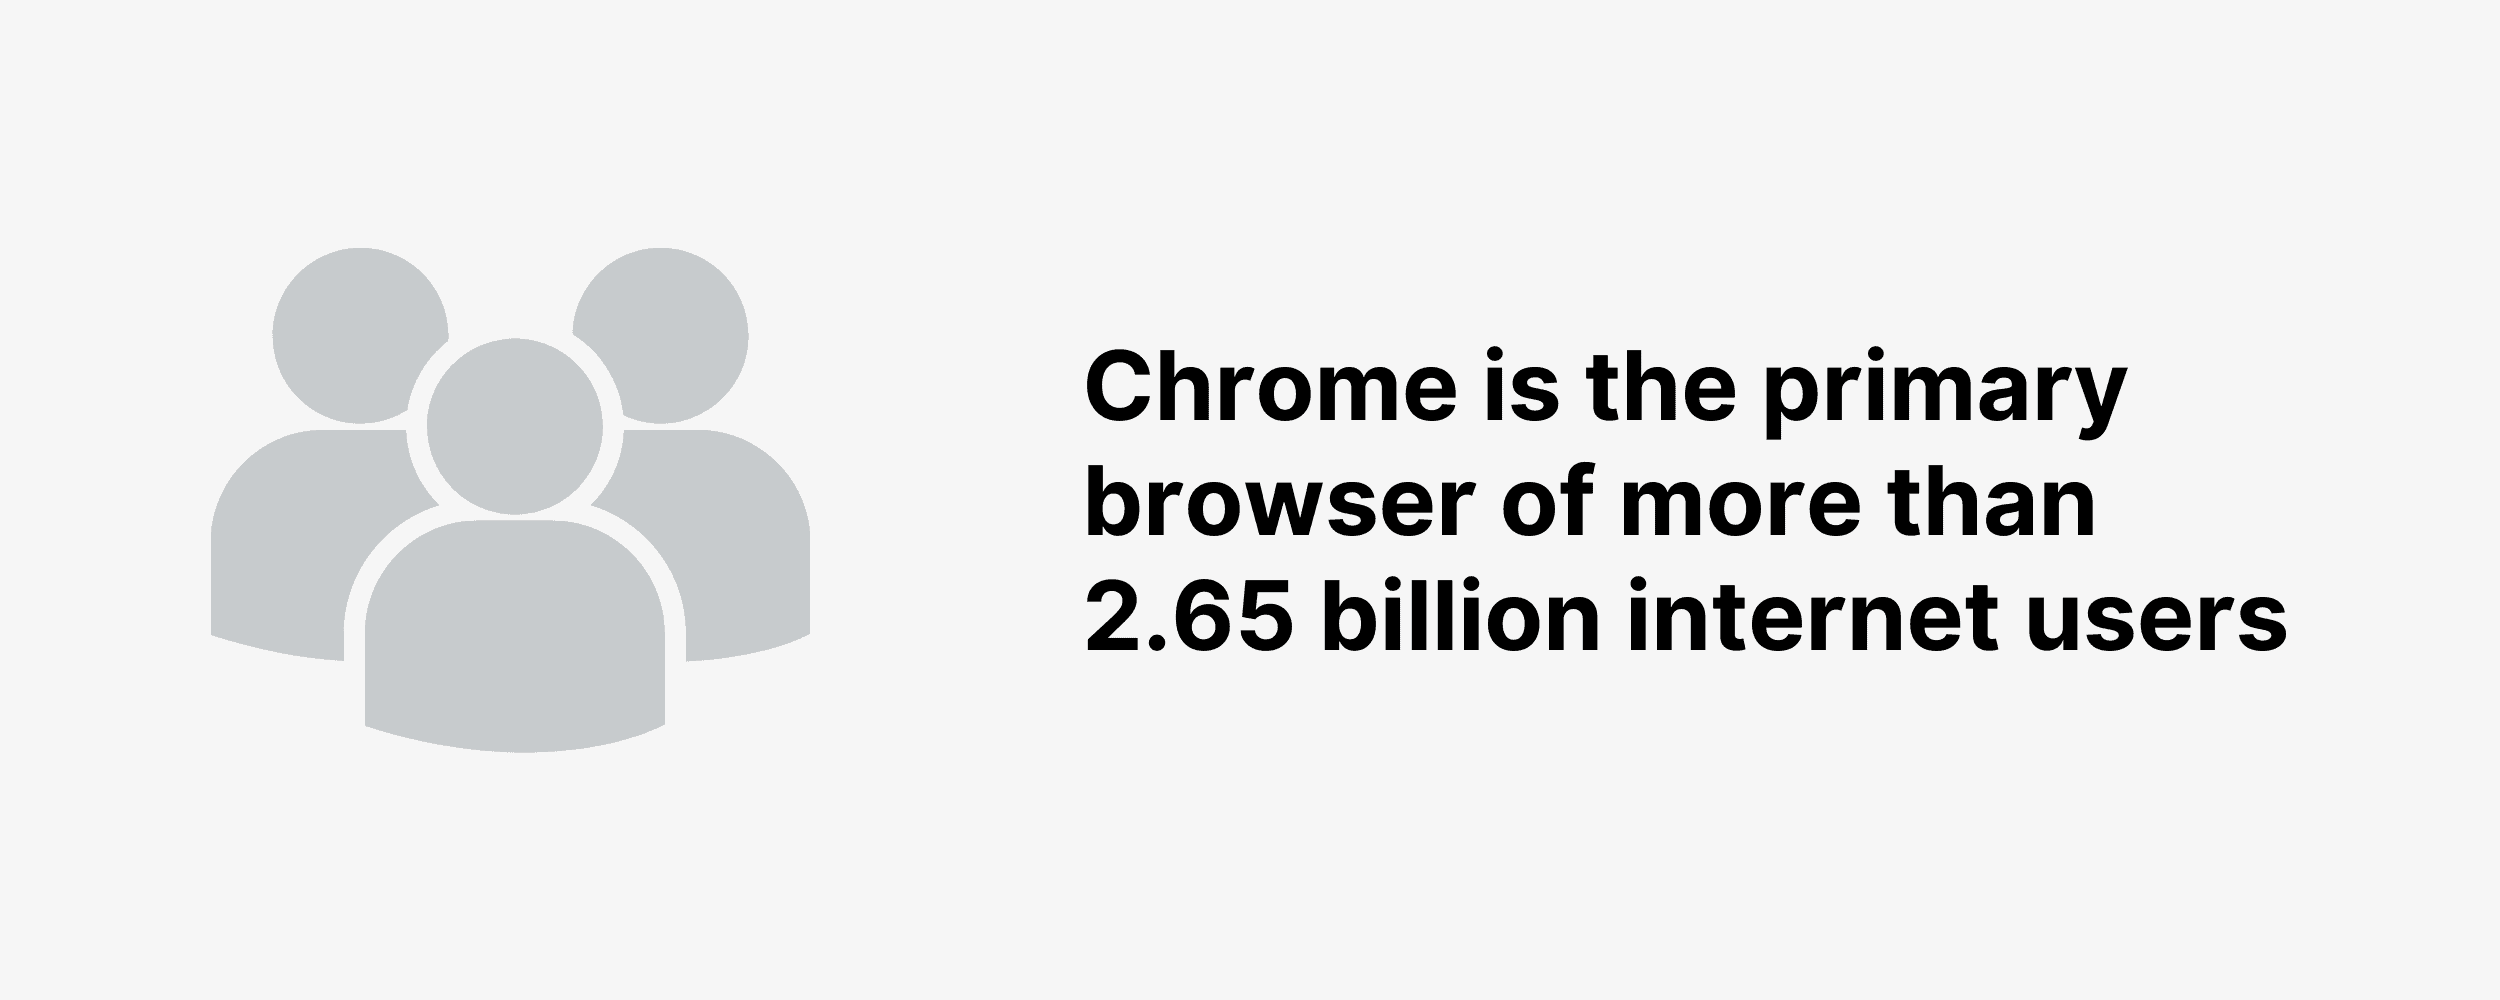 Chrome is the primary browser of more than 2.65 billion internet users